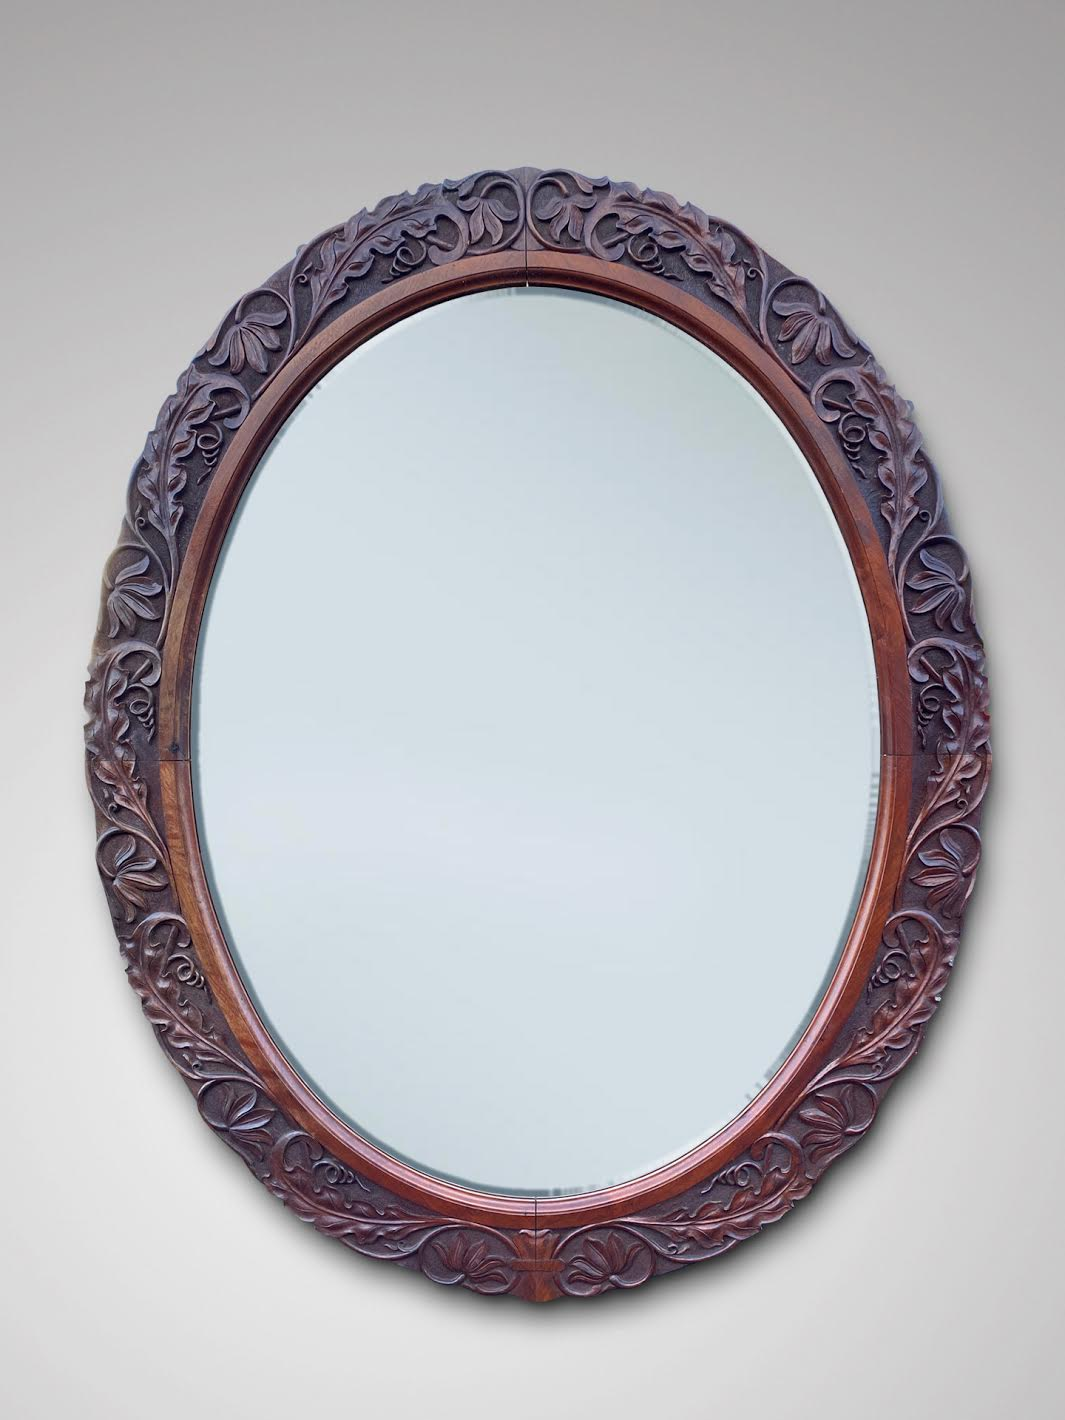 SOLD/19C LARGE OVAL CARVED MAHOGANY MIRROR